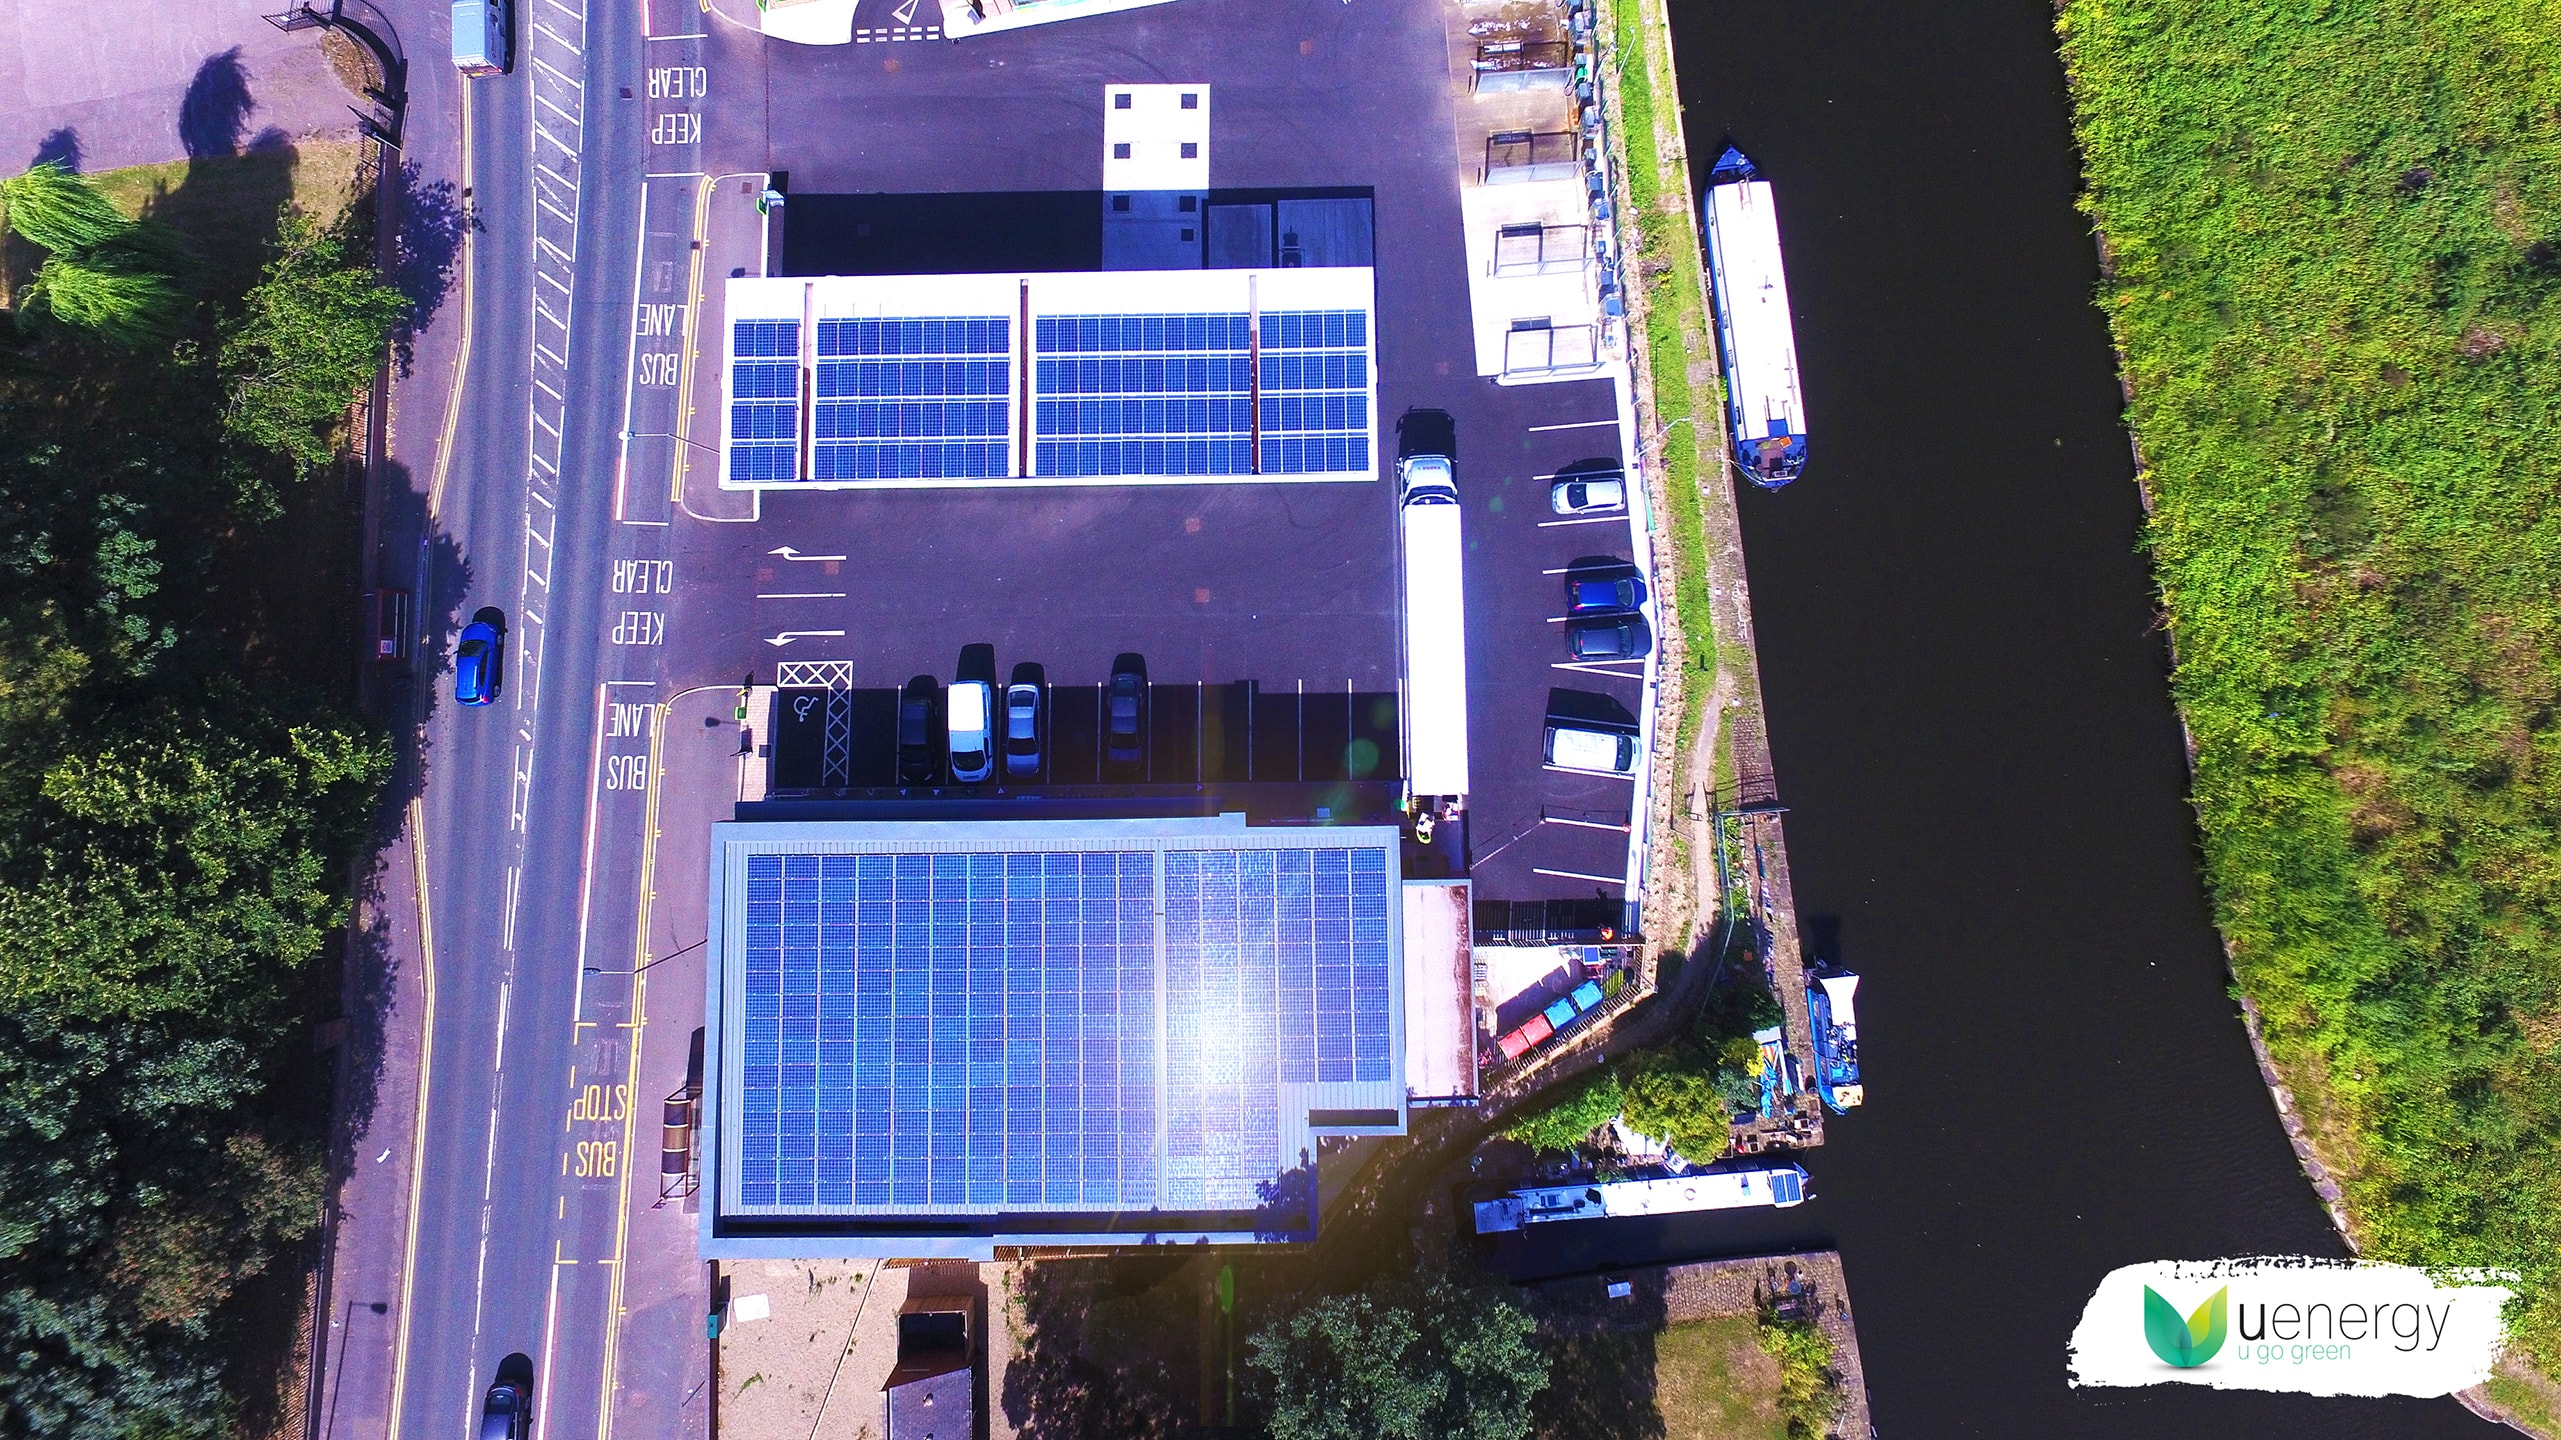 Solar Panels System At Euro Garages Petrol Station by U Energy Solar UK